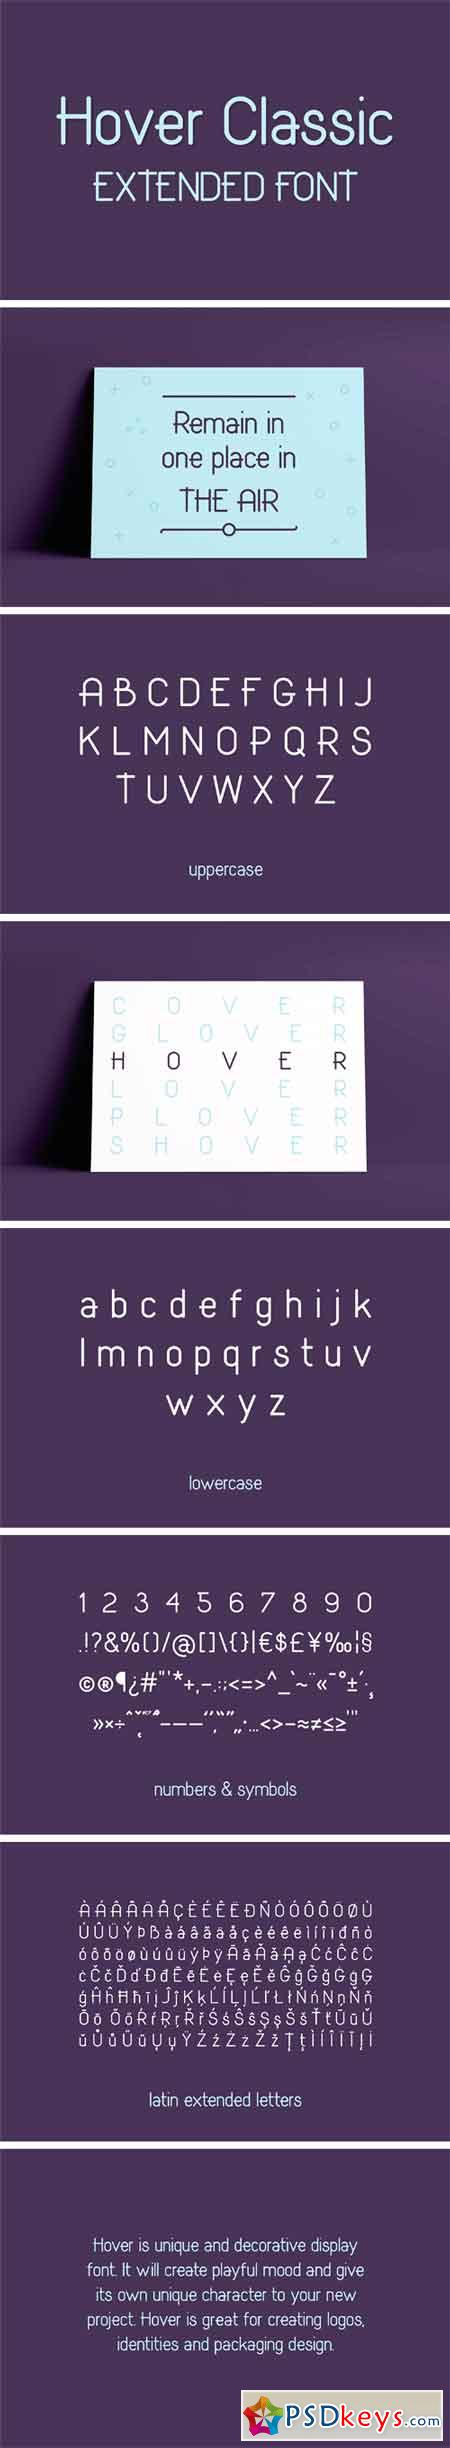 Hover Classic Extended Font 2113225